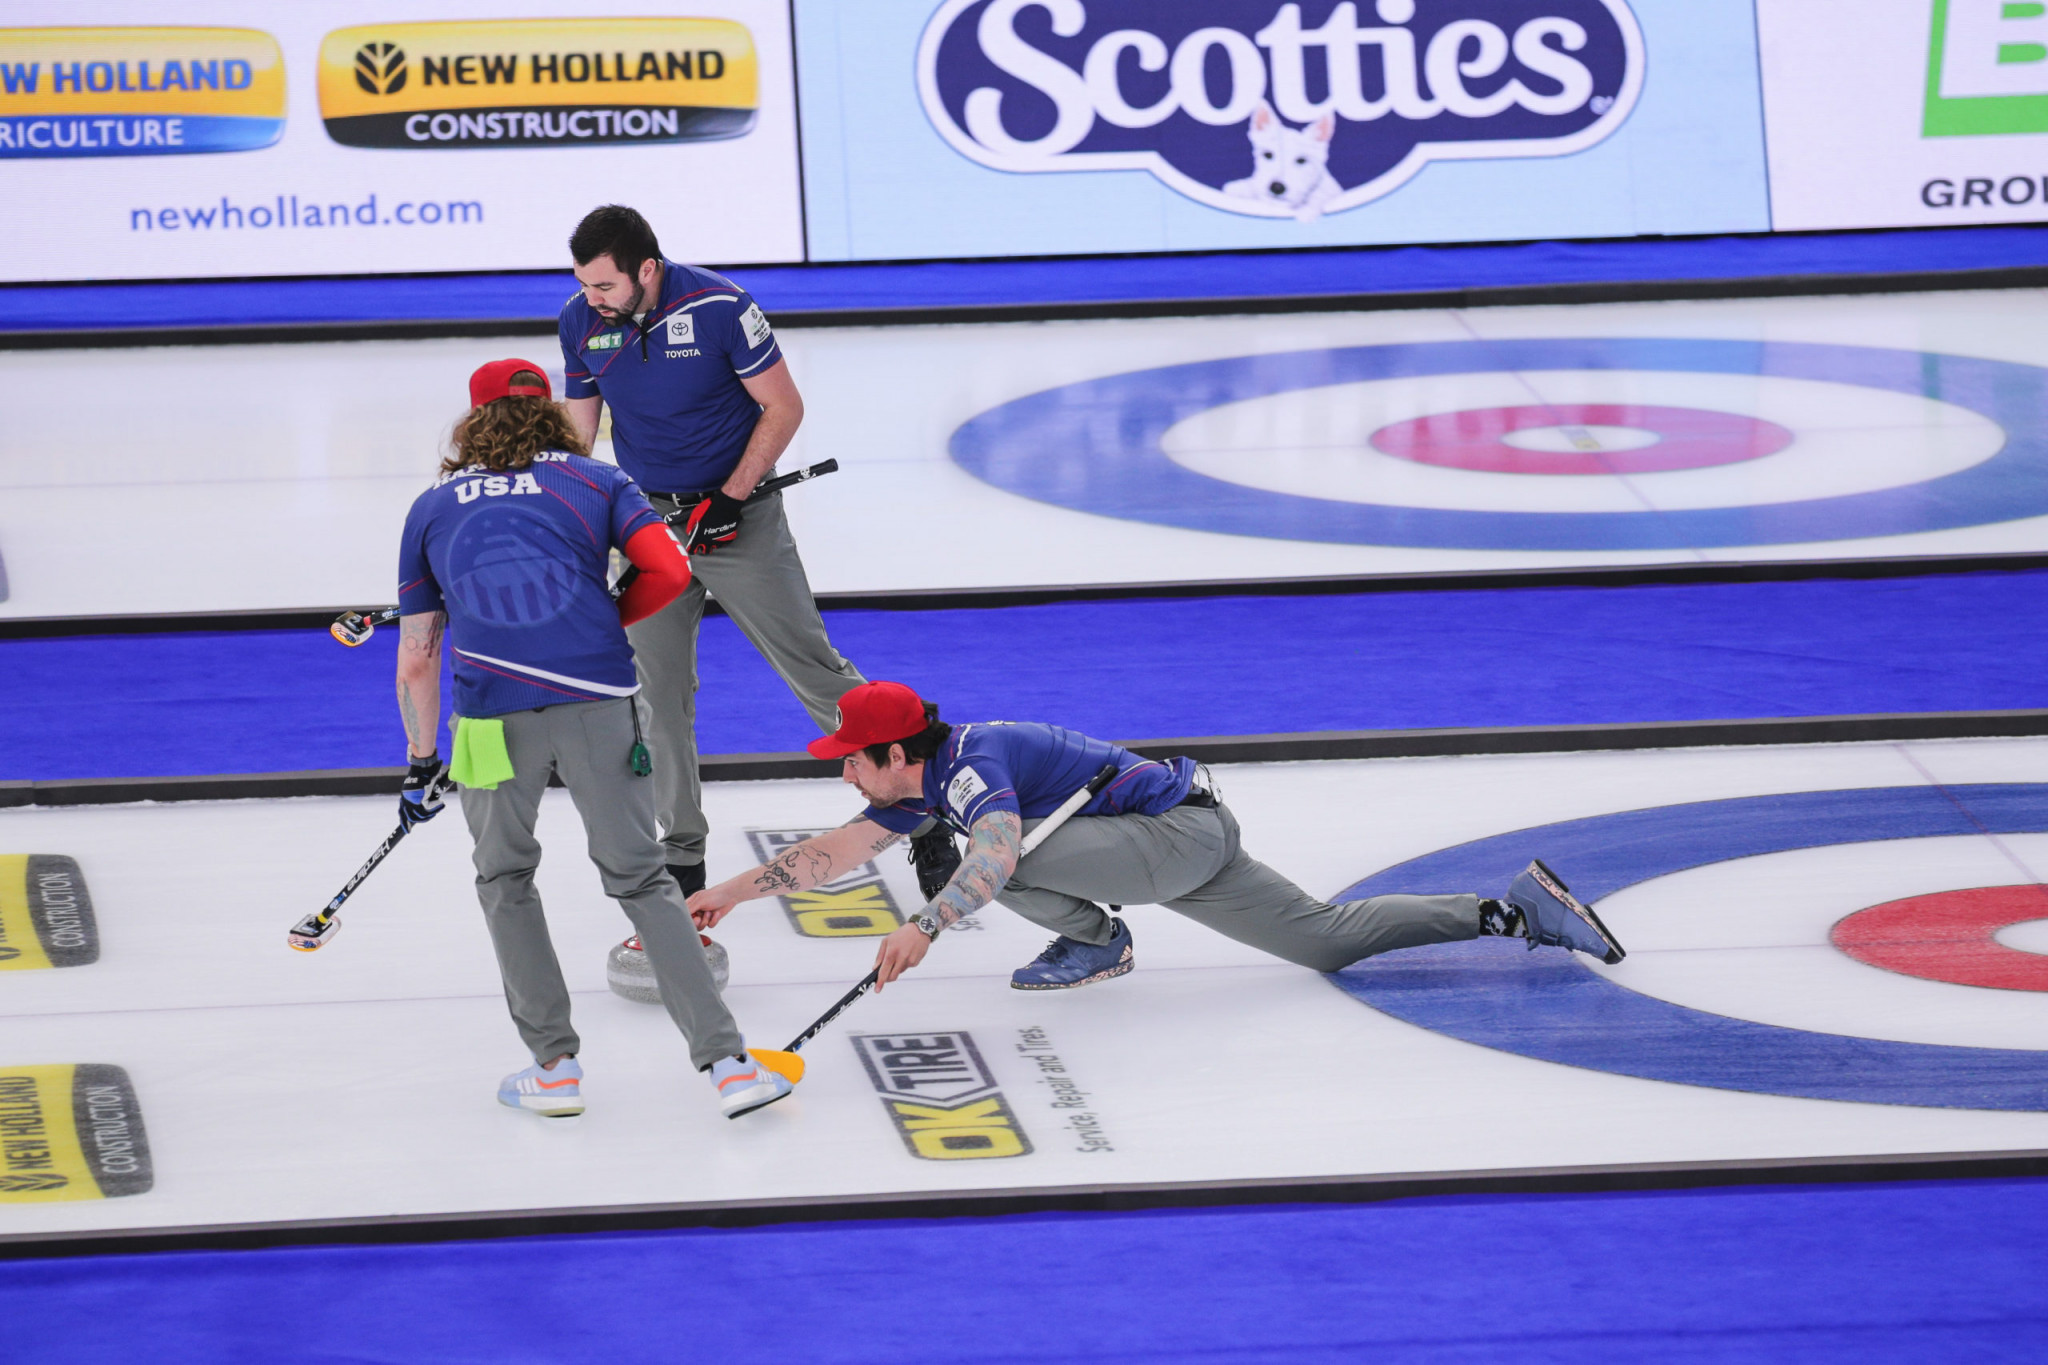 Men's World Curling Championship to resume following COVID-19 outbreak